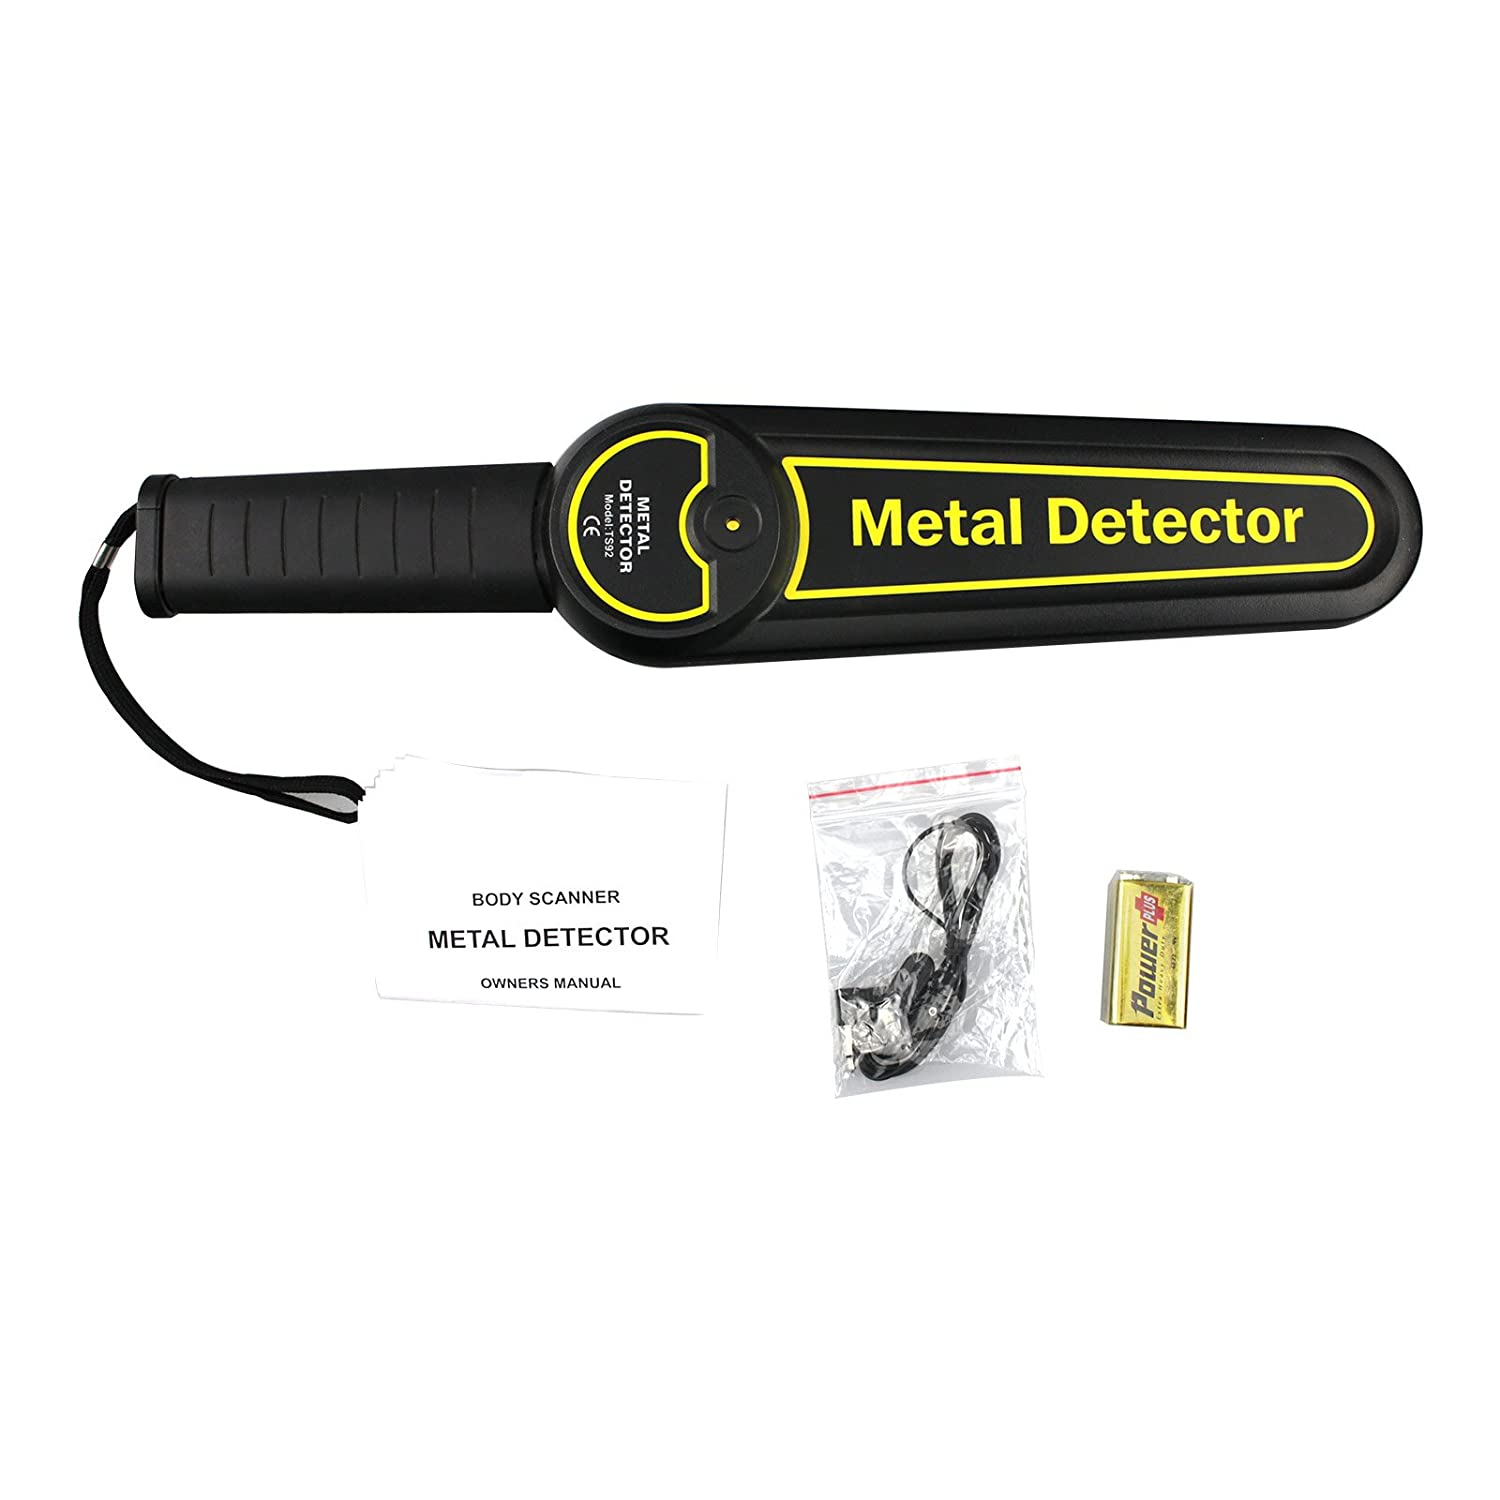 Amazon.com : allsun Metal Detector Handheld Security Wand : Garden & Outdoor